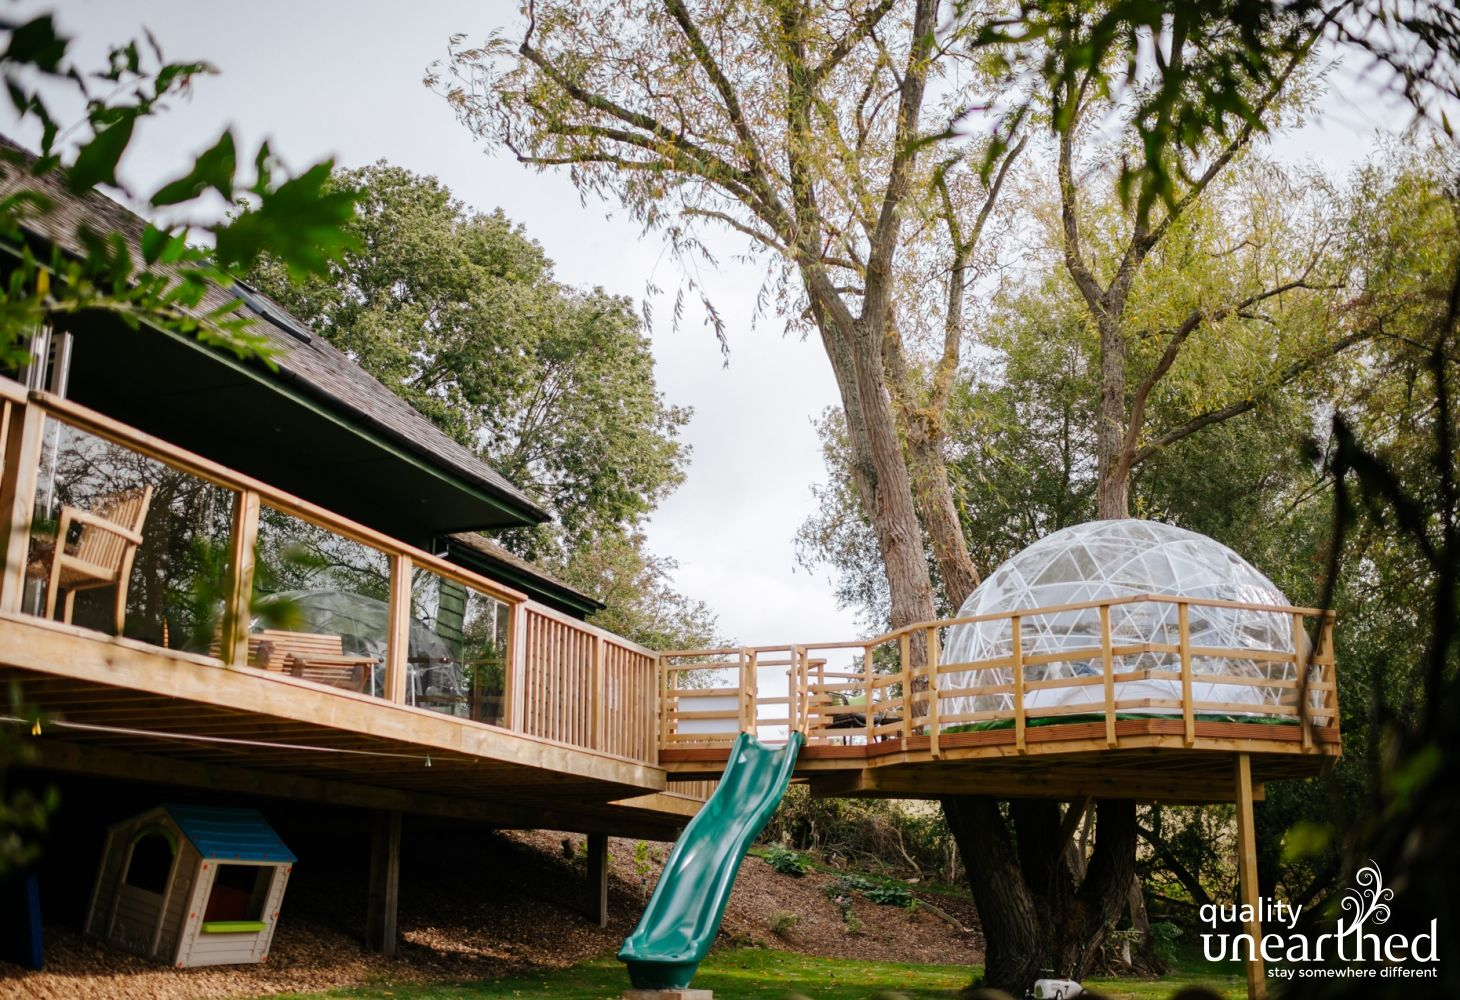 Slide down from the family treehouse to the private garden